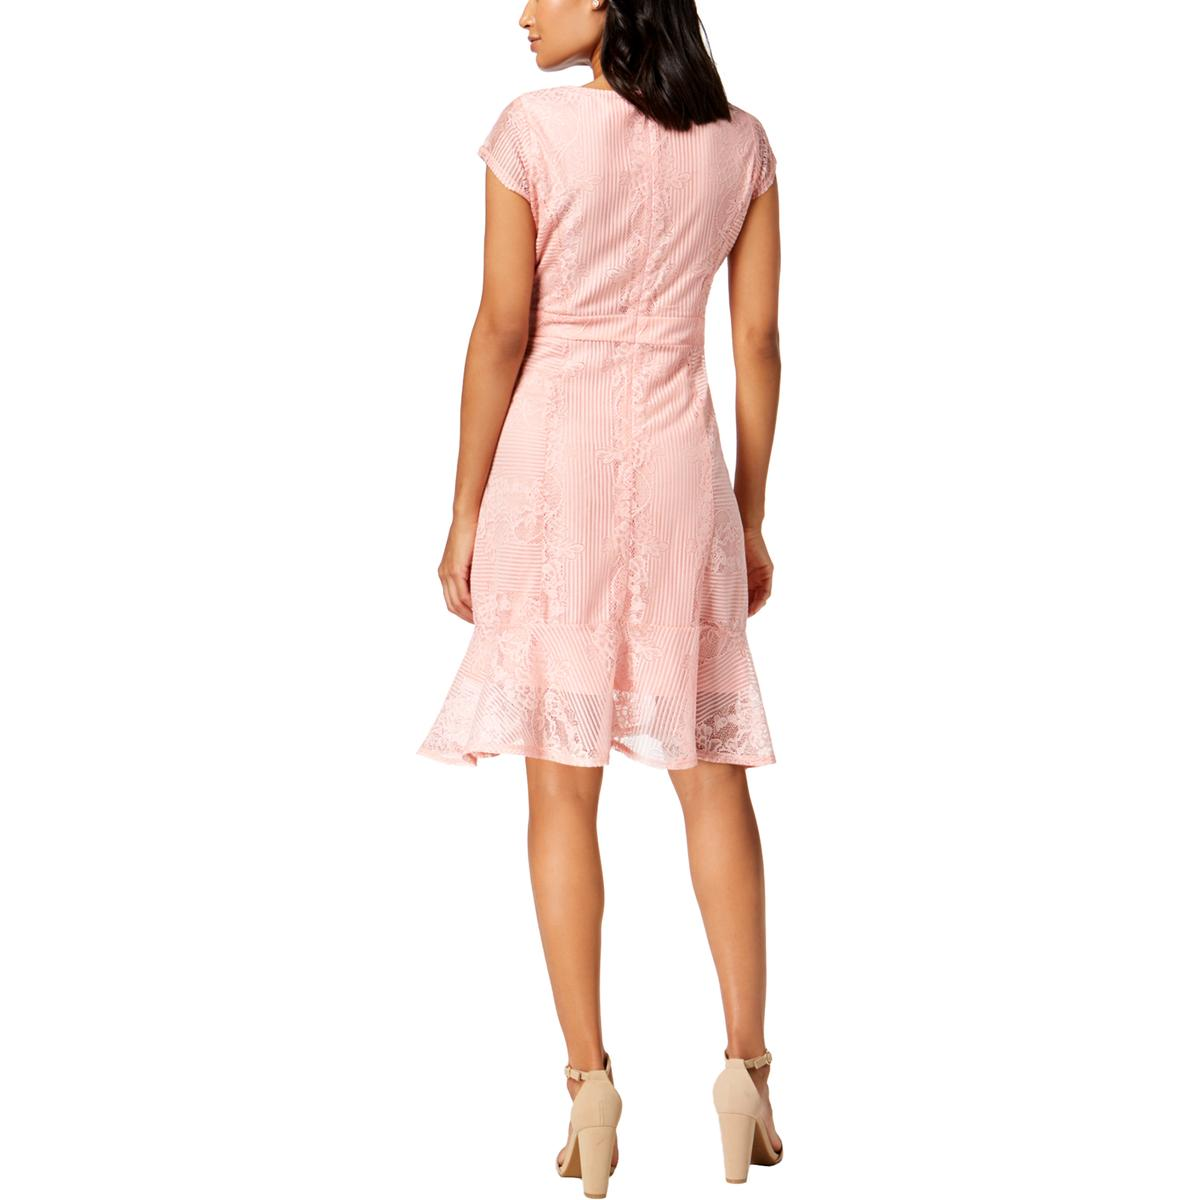 NY-Collection-Womens-Floral-Print-V-Neck-Cocktail-Party-Dress-Petites-BHFO-4087 thumbnail 5